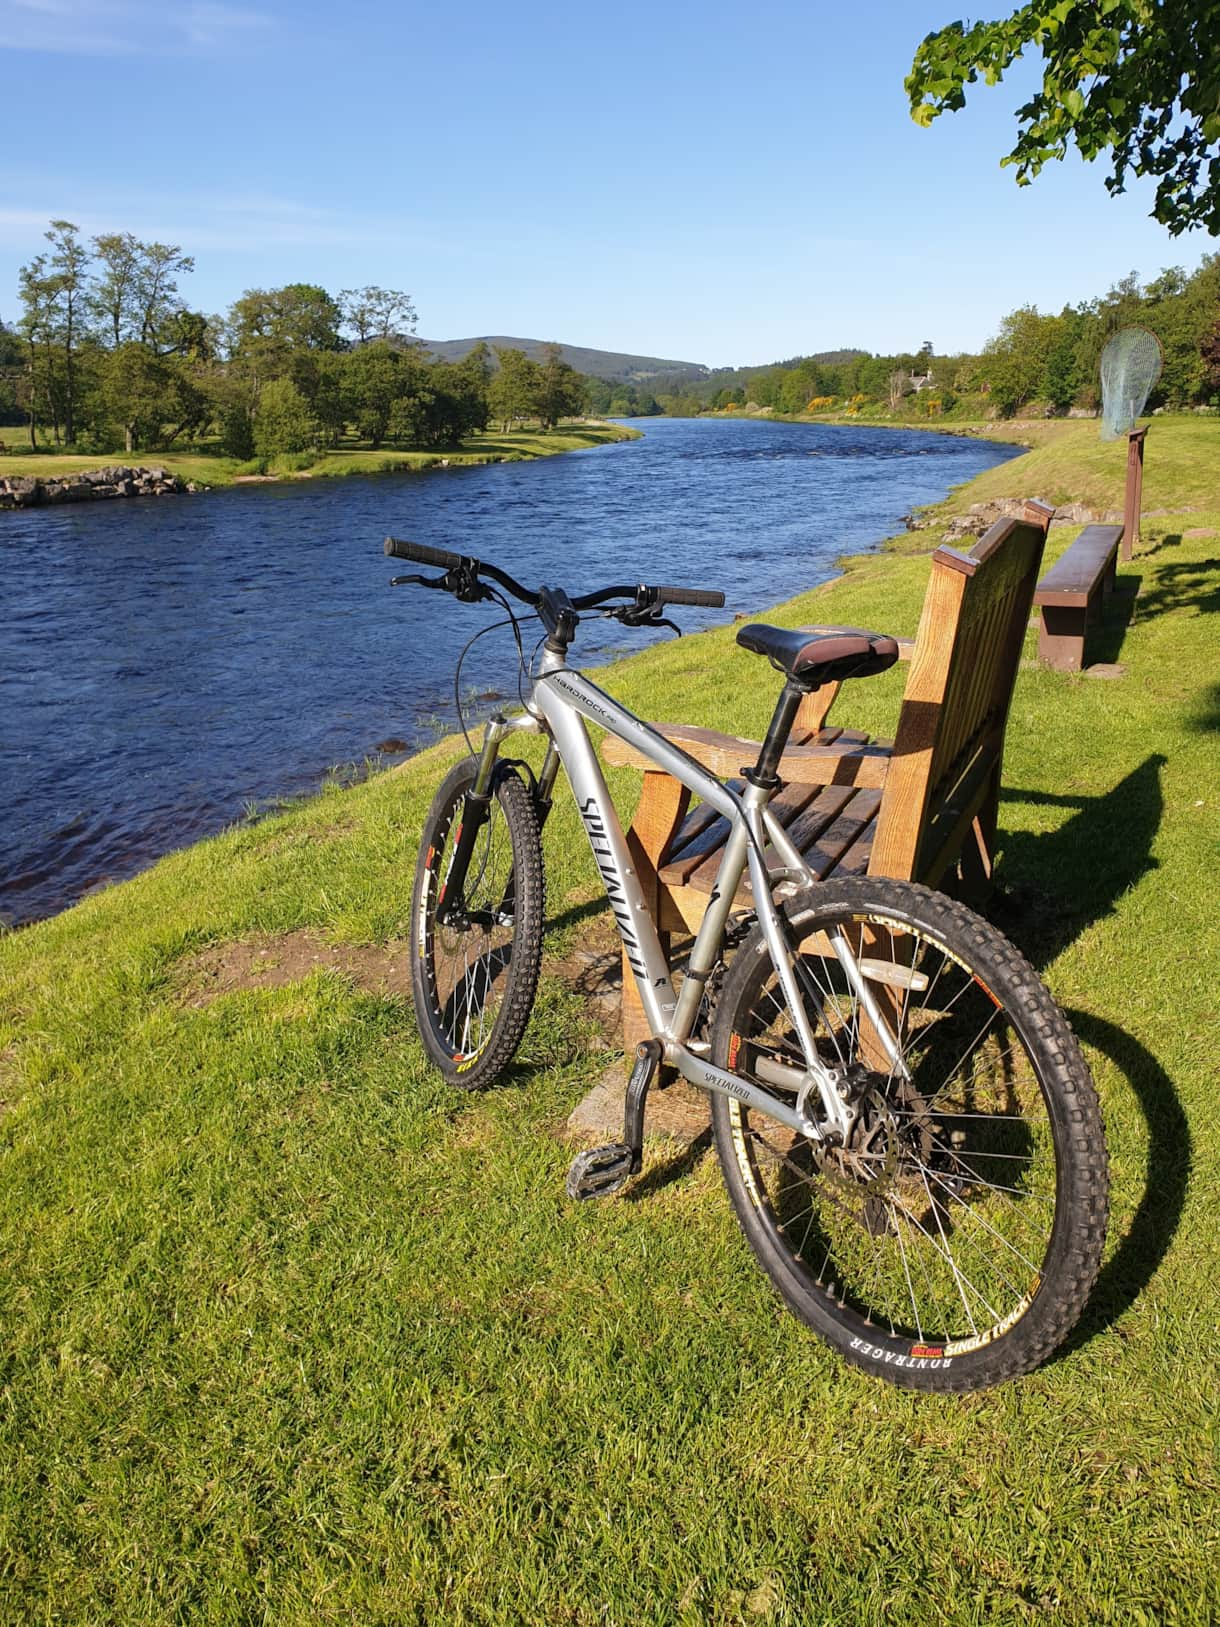 Take one of our 2 bikes available for a cycle down the Speyside Way